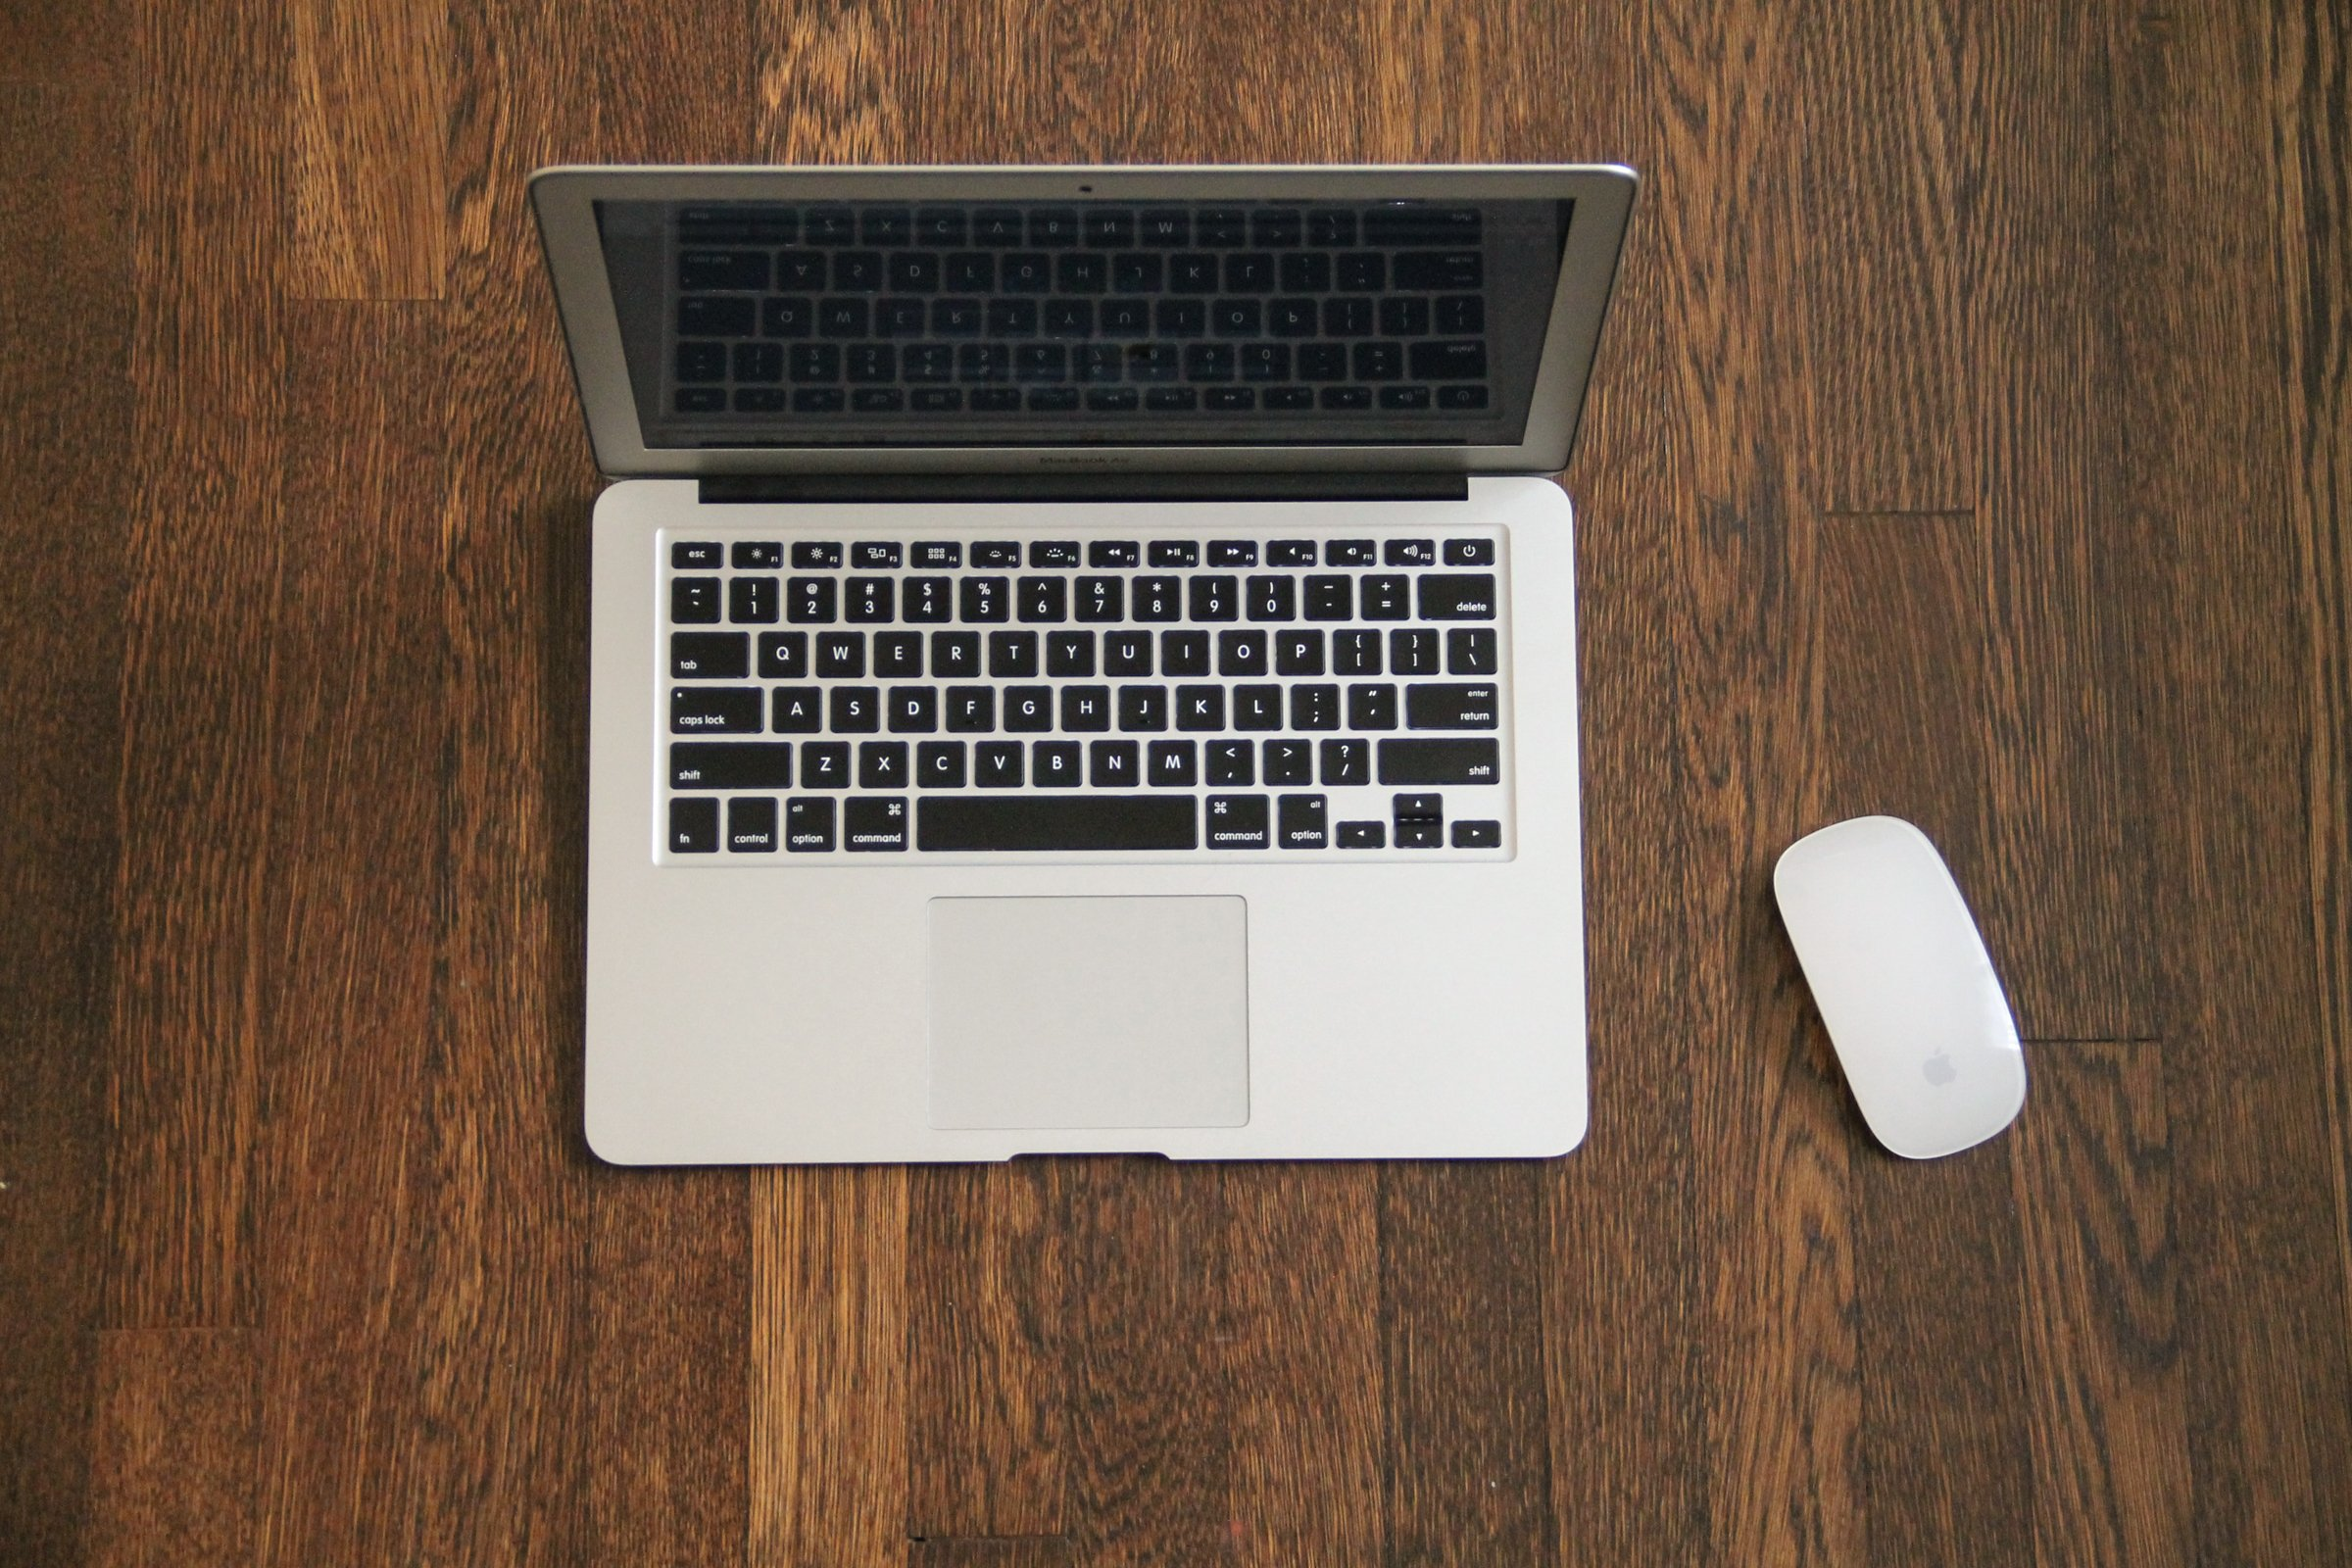 Macbook Air & Mouse on Wooden Desk » Good Stock Photos